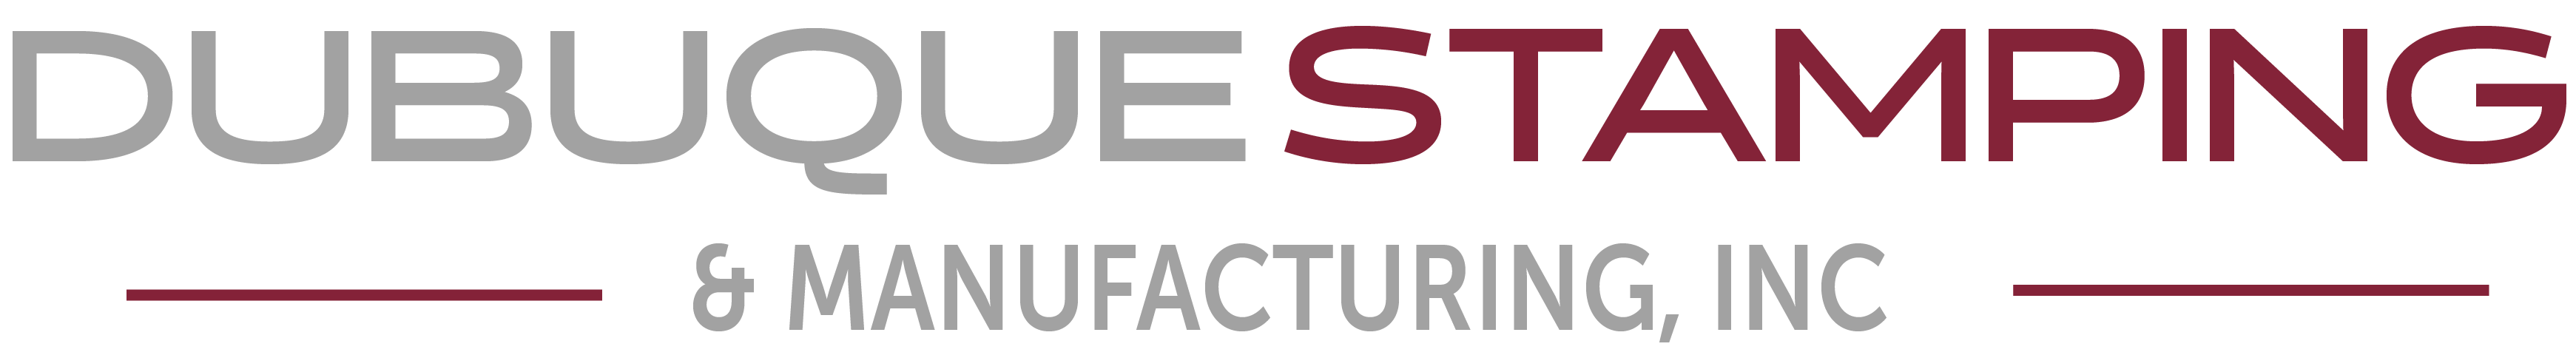 Dubuque Stamping & Manufacturing, Inc.